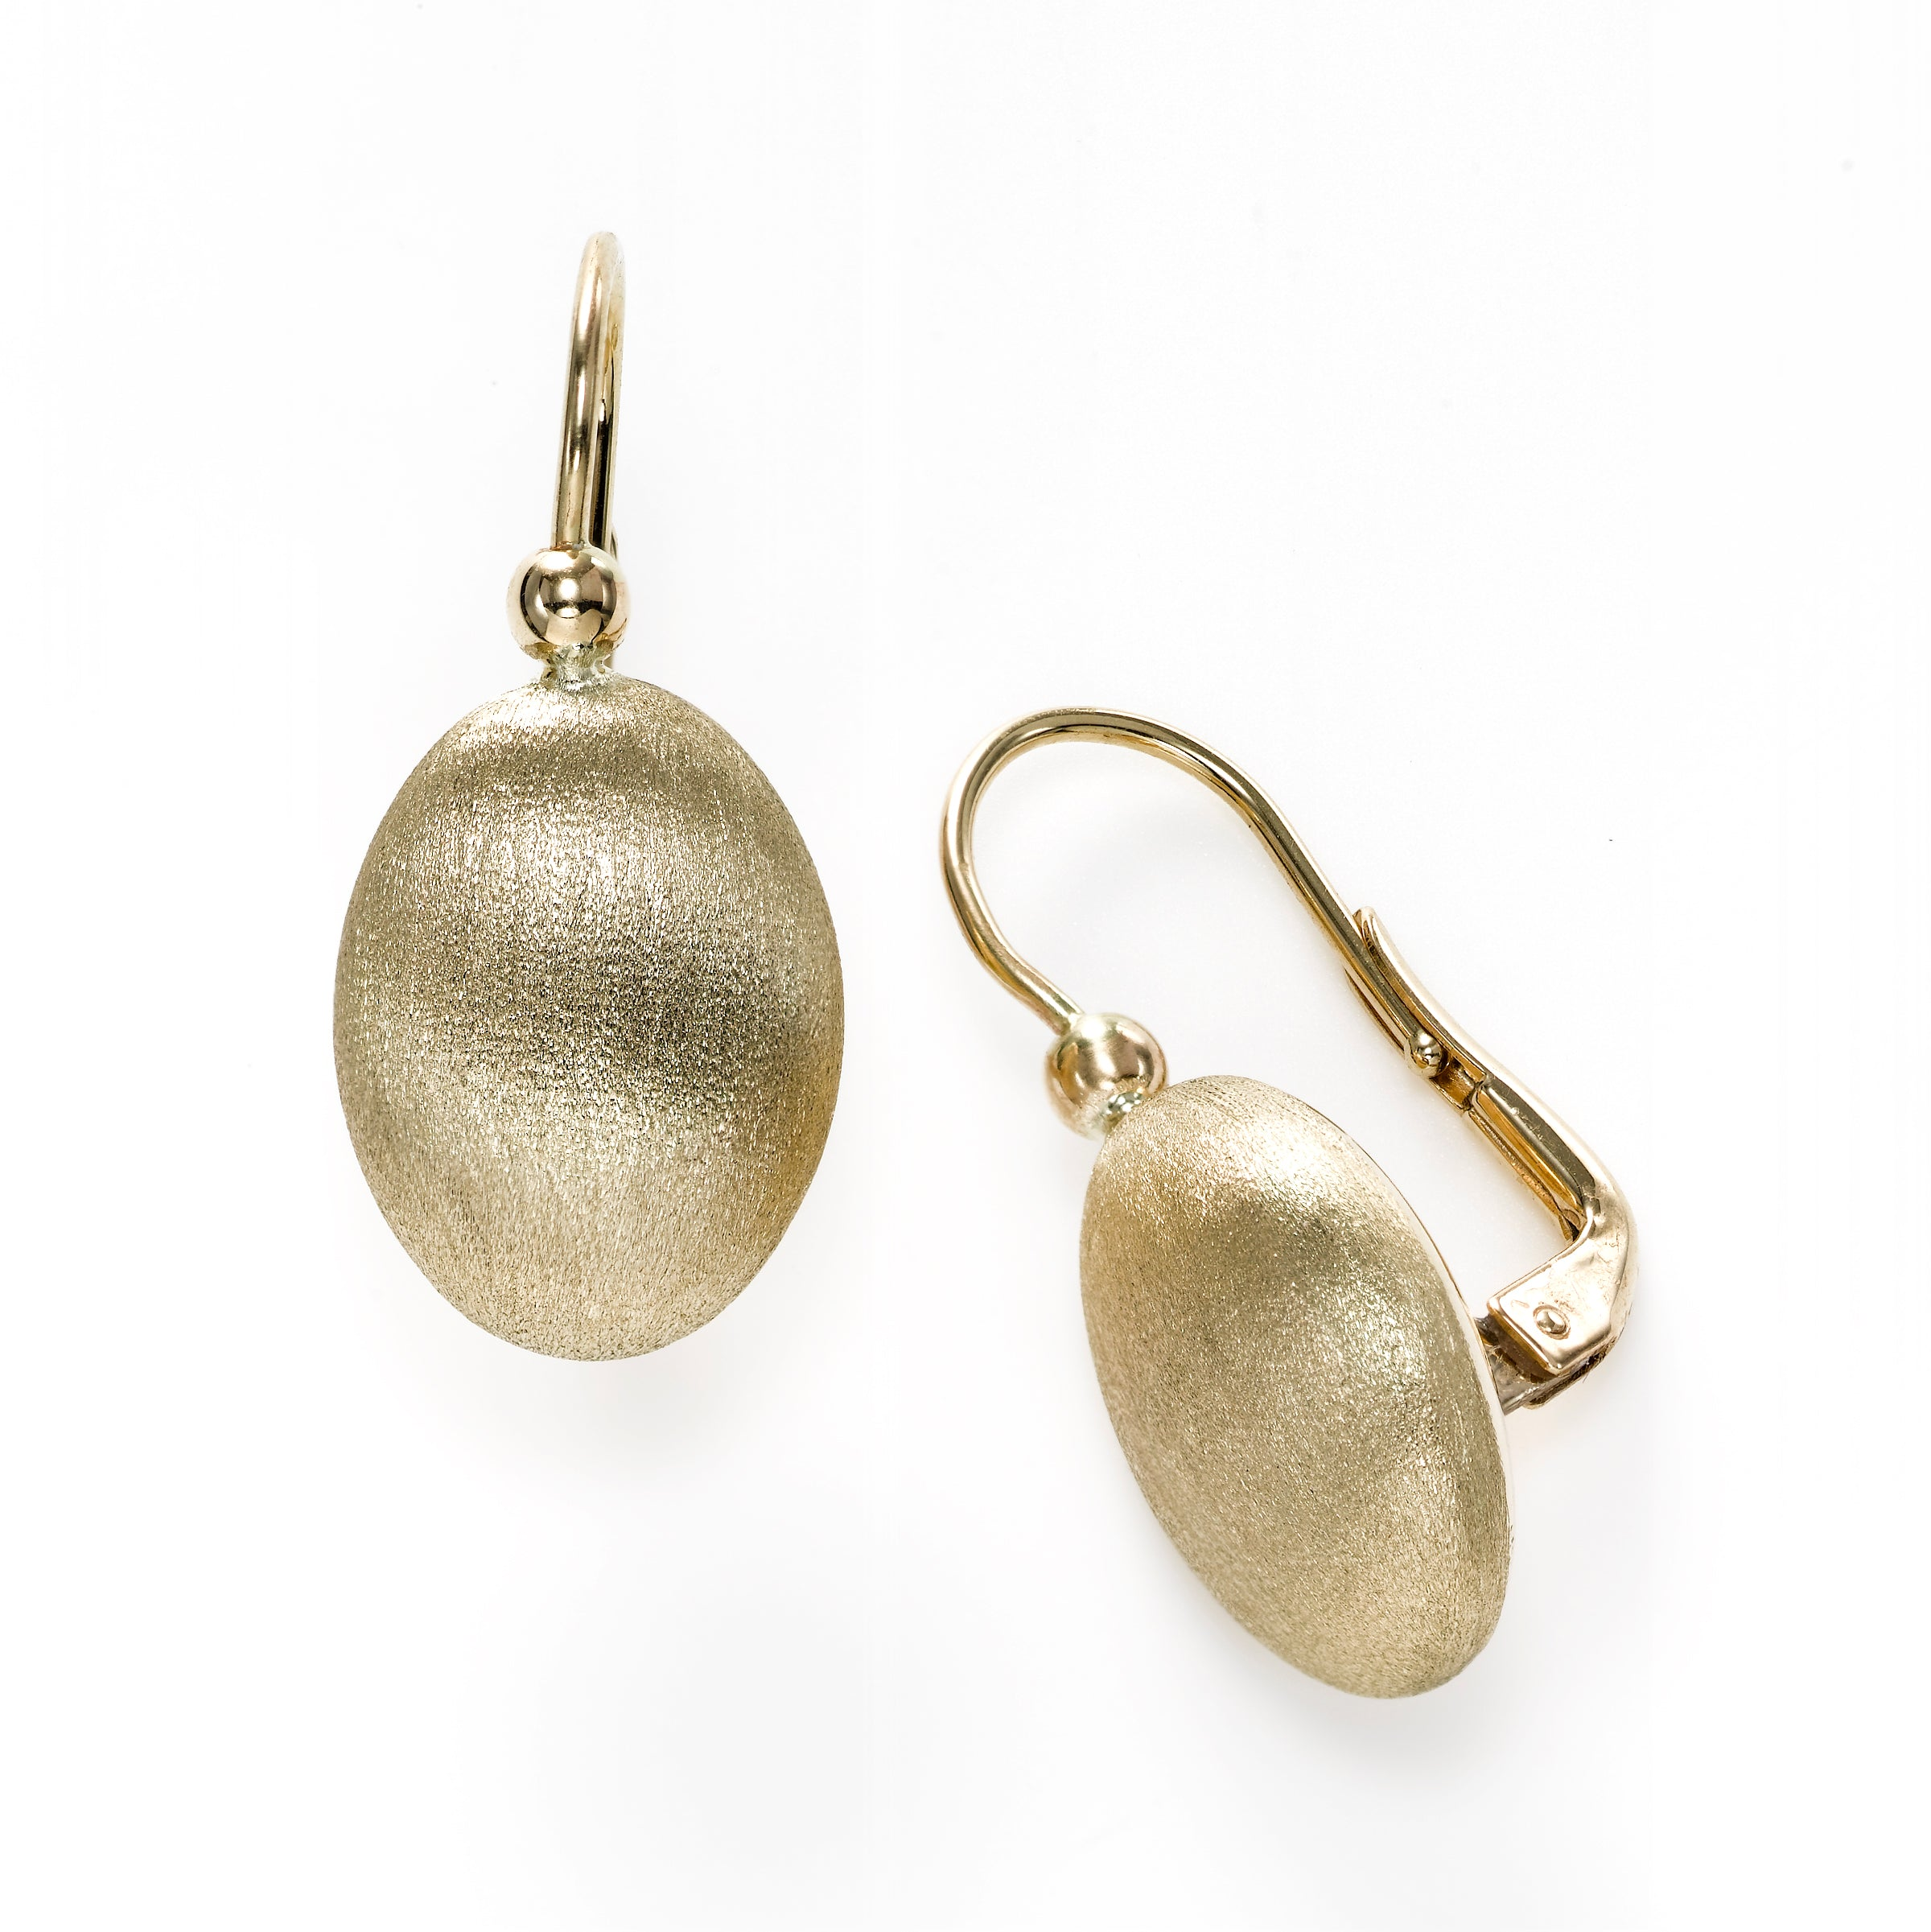 Oval Florentine Finish Leverback Earrings, 14K Yellow Gold